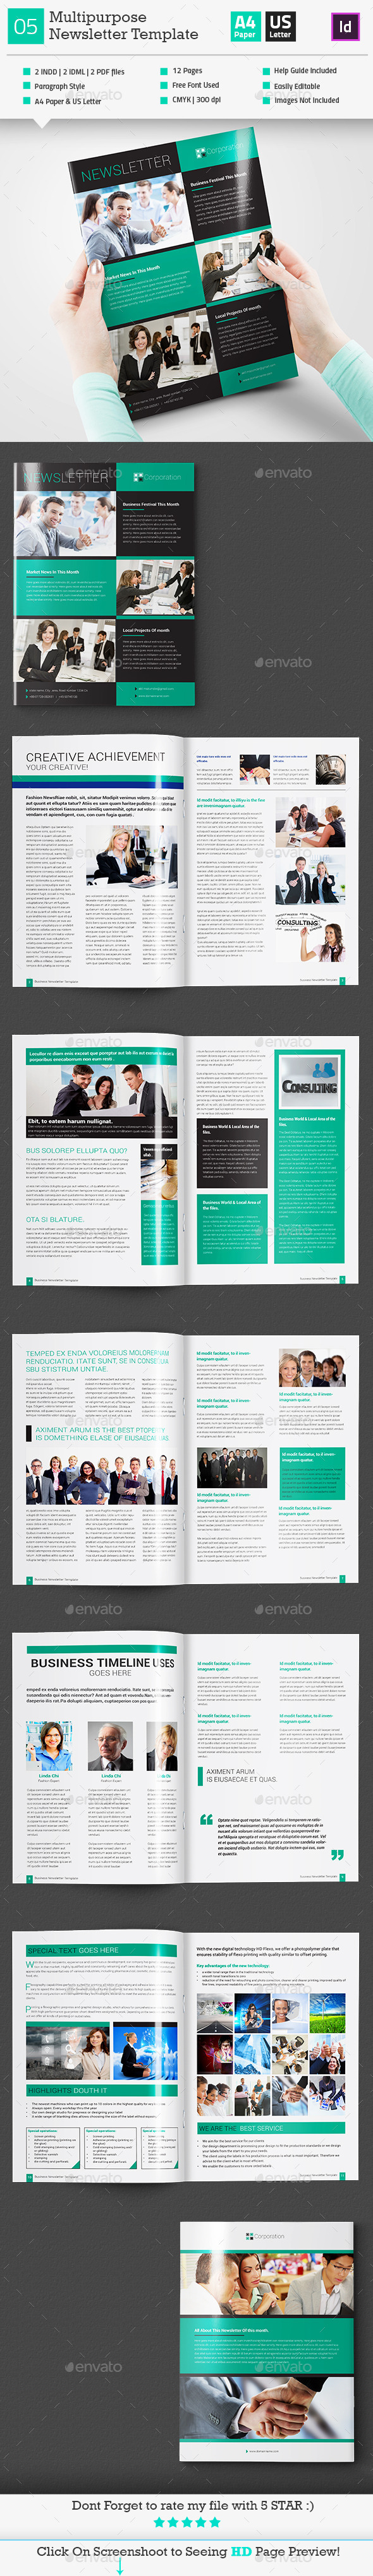 GraphicRiver Multipurpose Newsletter Template InDesign V4 11181438